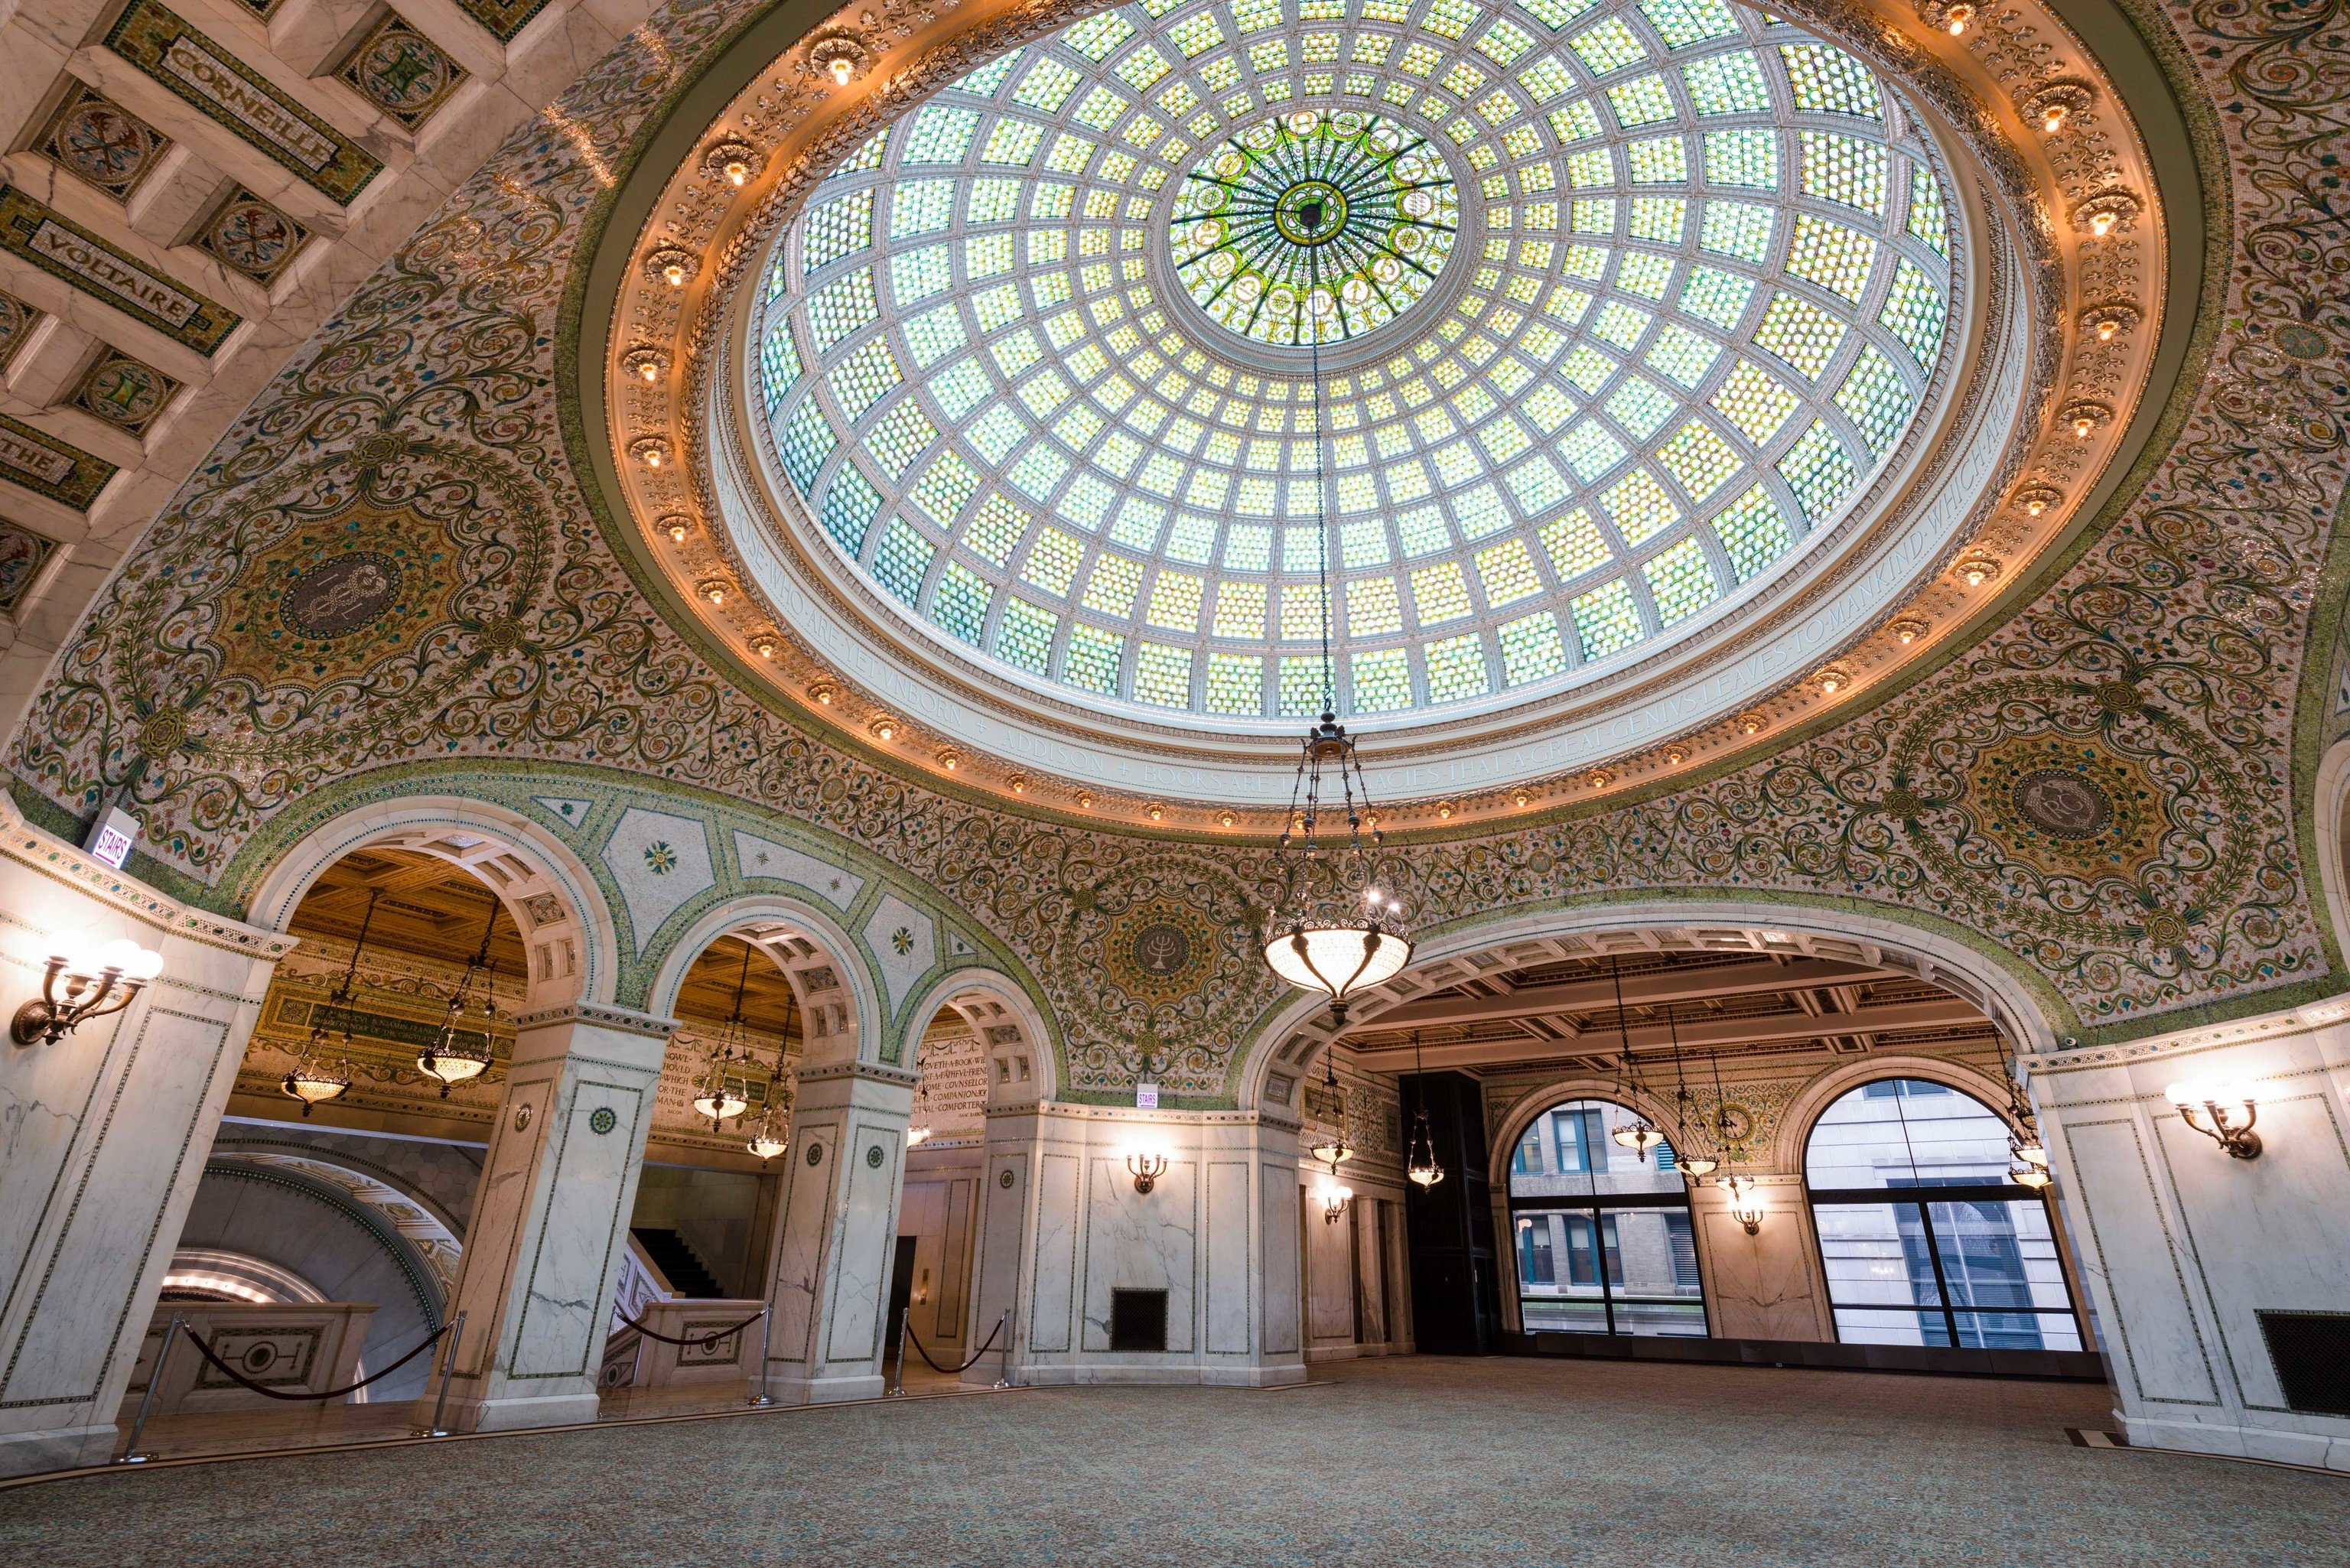 Arts + Culture Food + Drink Hotels Weekend Getaways building landmark dome ceiling Architecture symmetry daylighting arch tourist attraction window estate arcade byzantine architecture stock photography chapel religious institute historic site